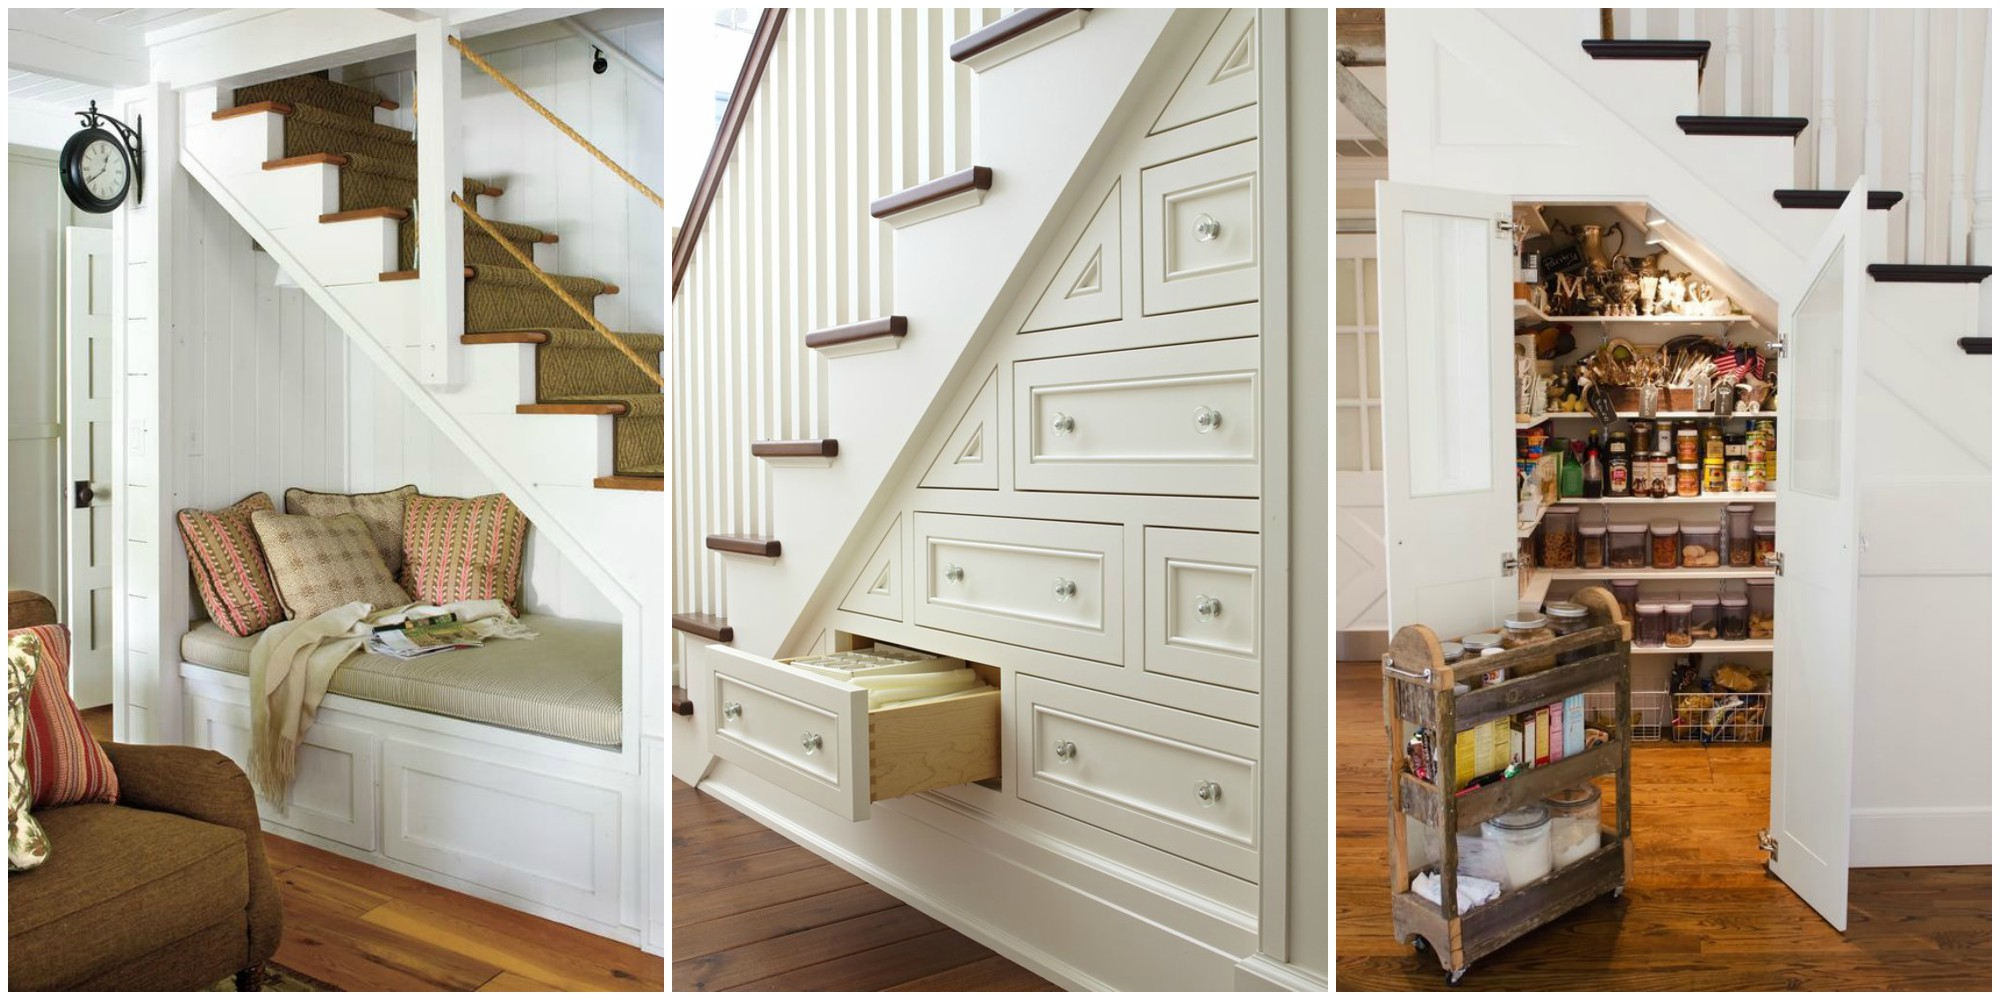 15 Genius Under Stairs Storage Ideas What To Do With